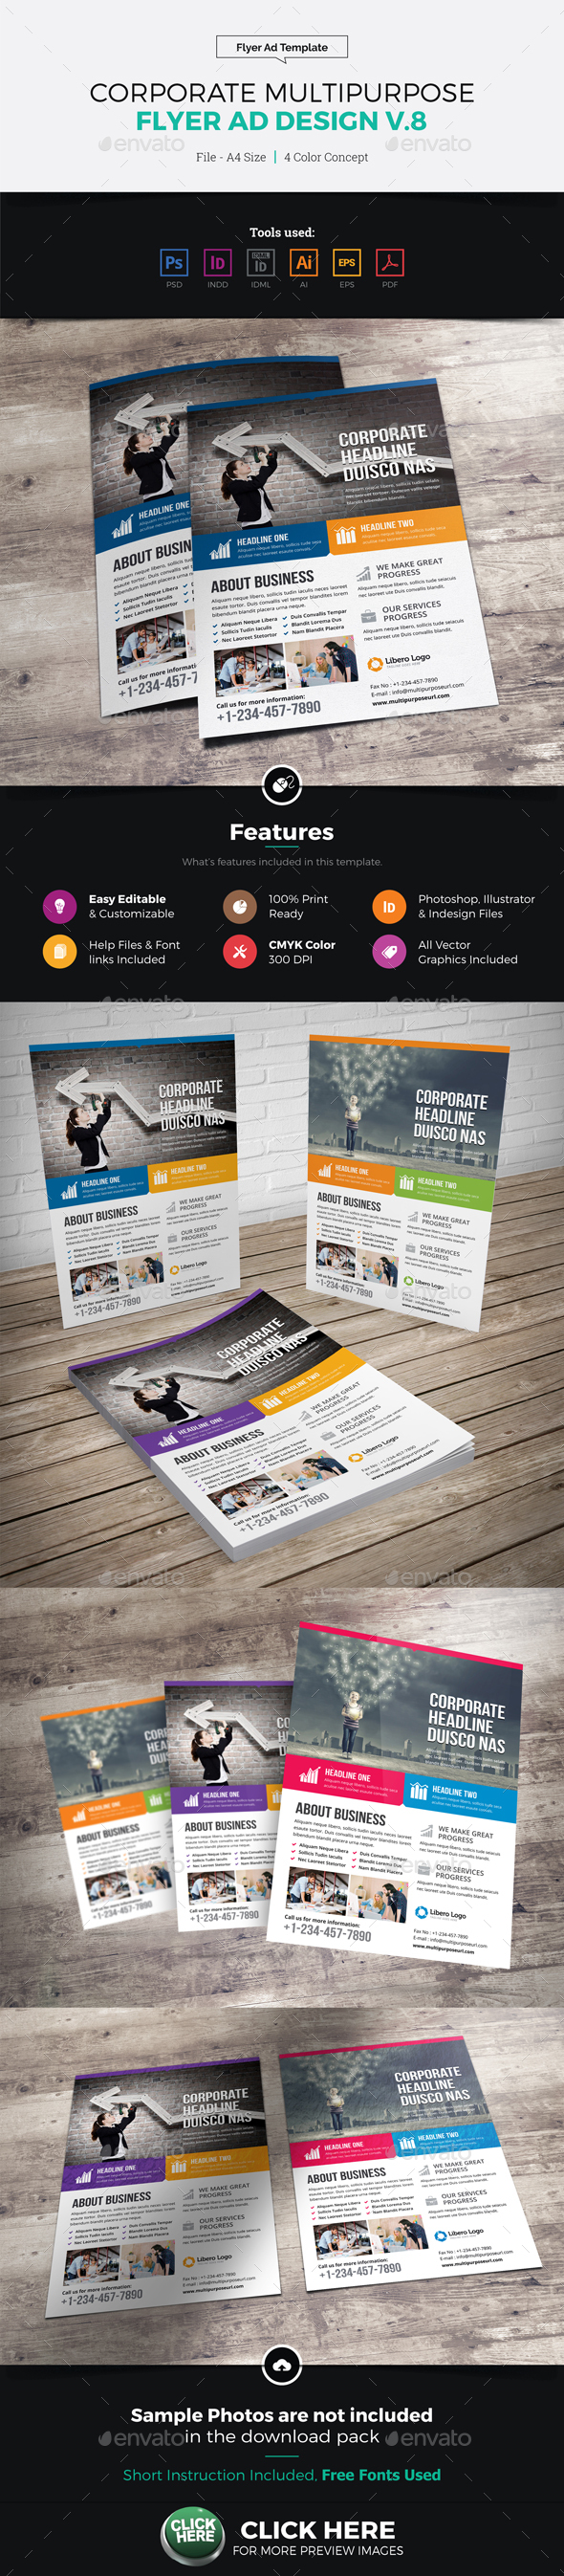 Corporate Multipurpose Flyer Ad Design v8 - Corporate Flyers